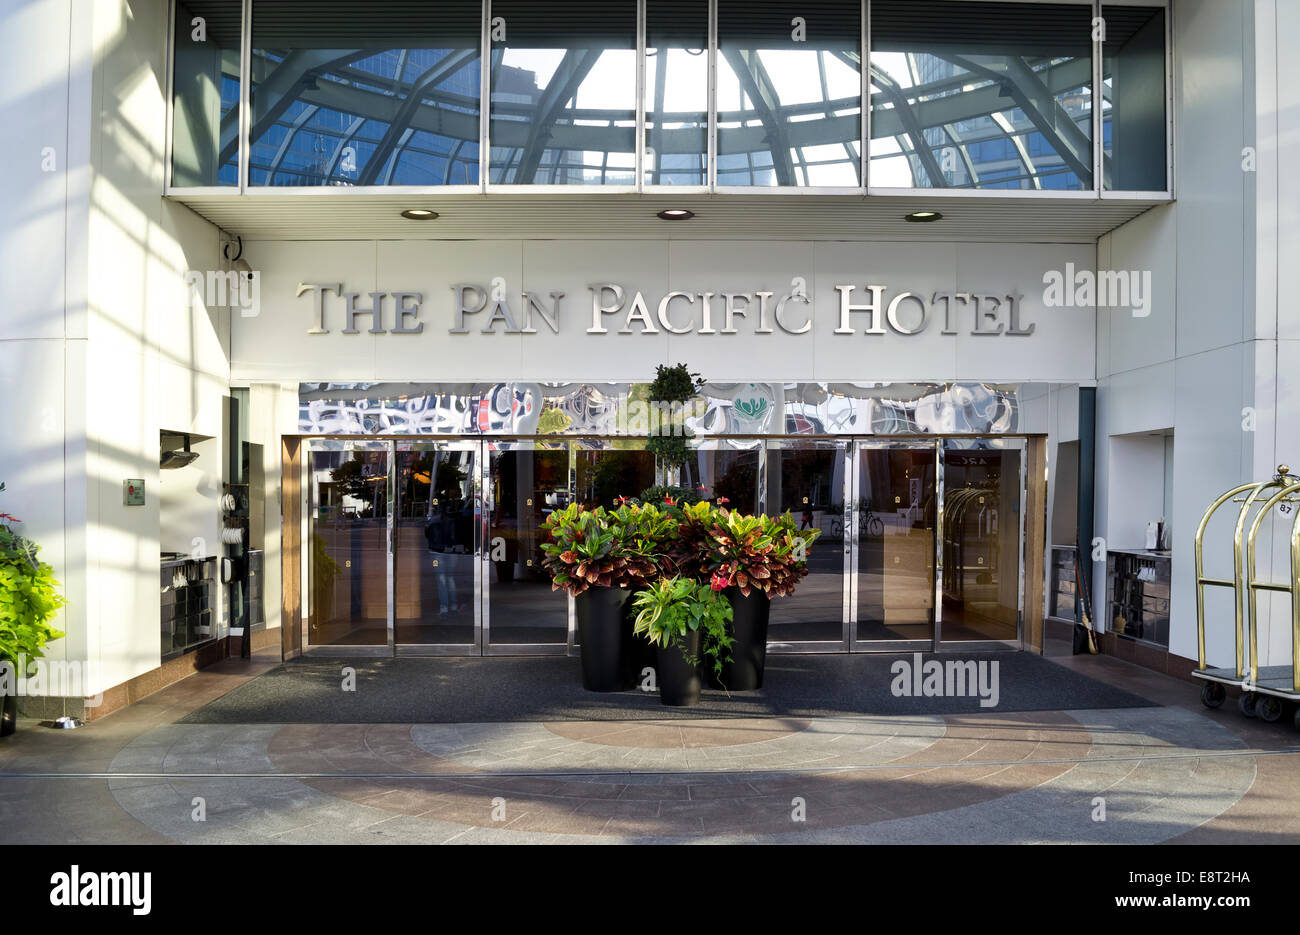 pan pacific hotel stock photos pan pacific hotel stock. Black Bedroom Furniture Sets. Home Design Ideas